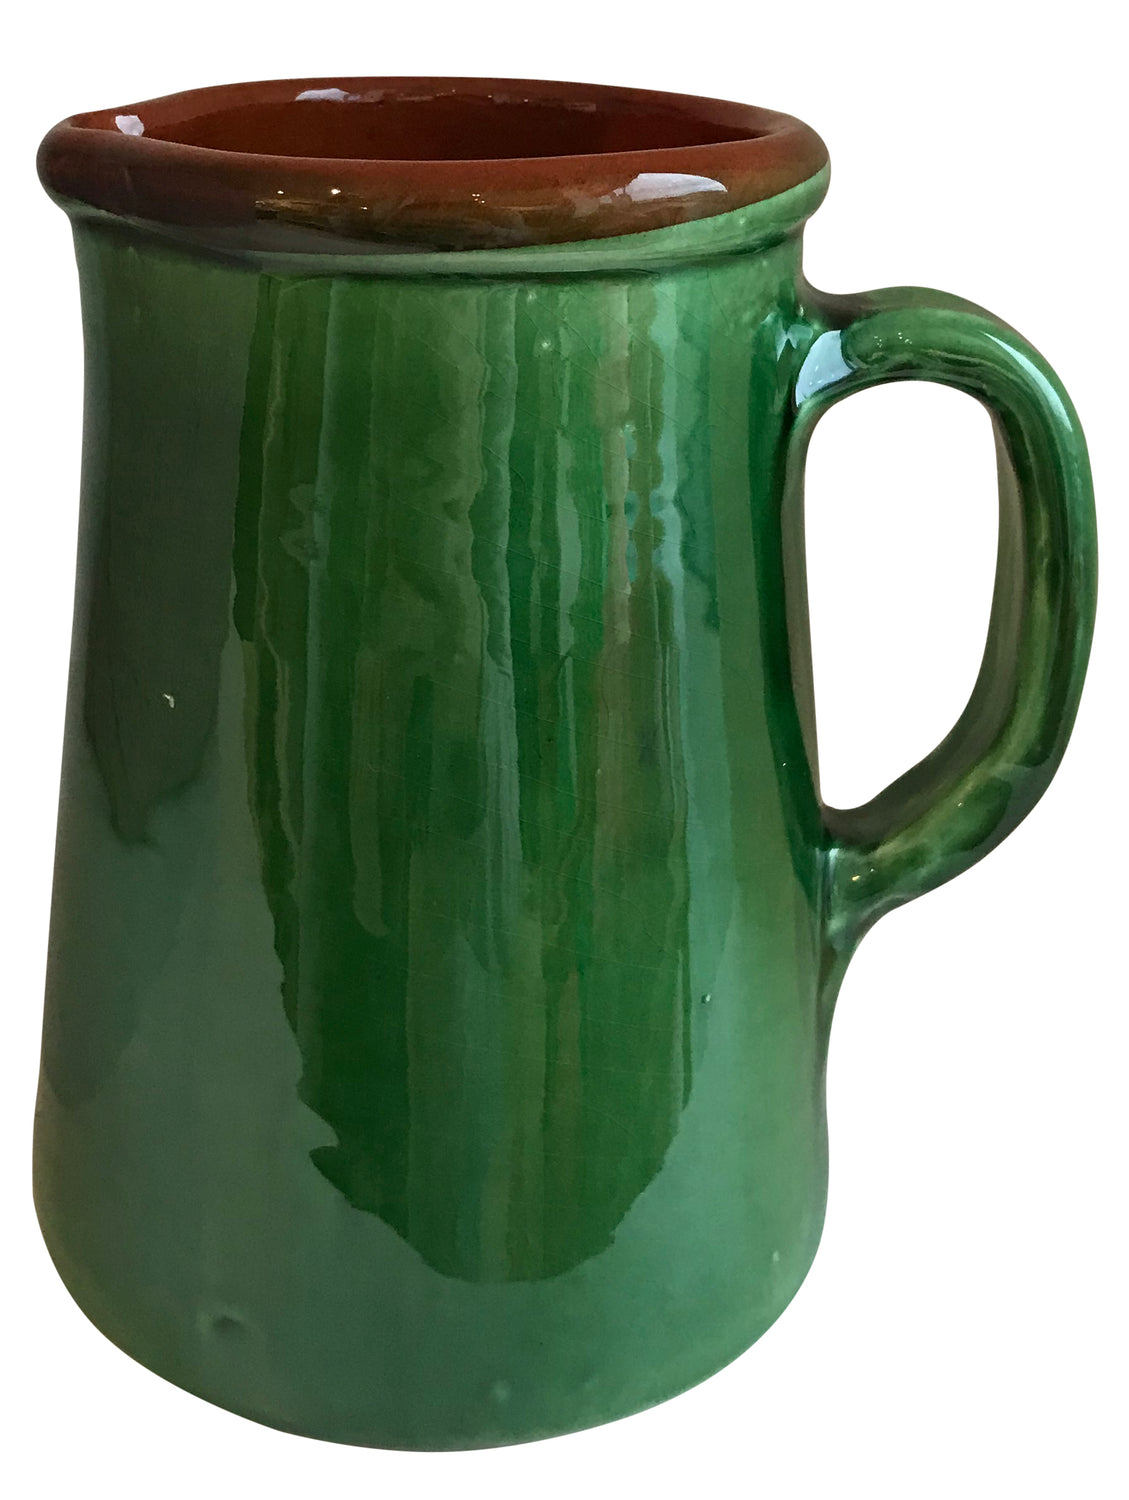 From the region of Catalonia, Spain comes this beautiful, authentic Green Spanish jug